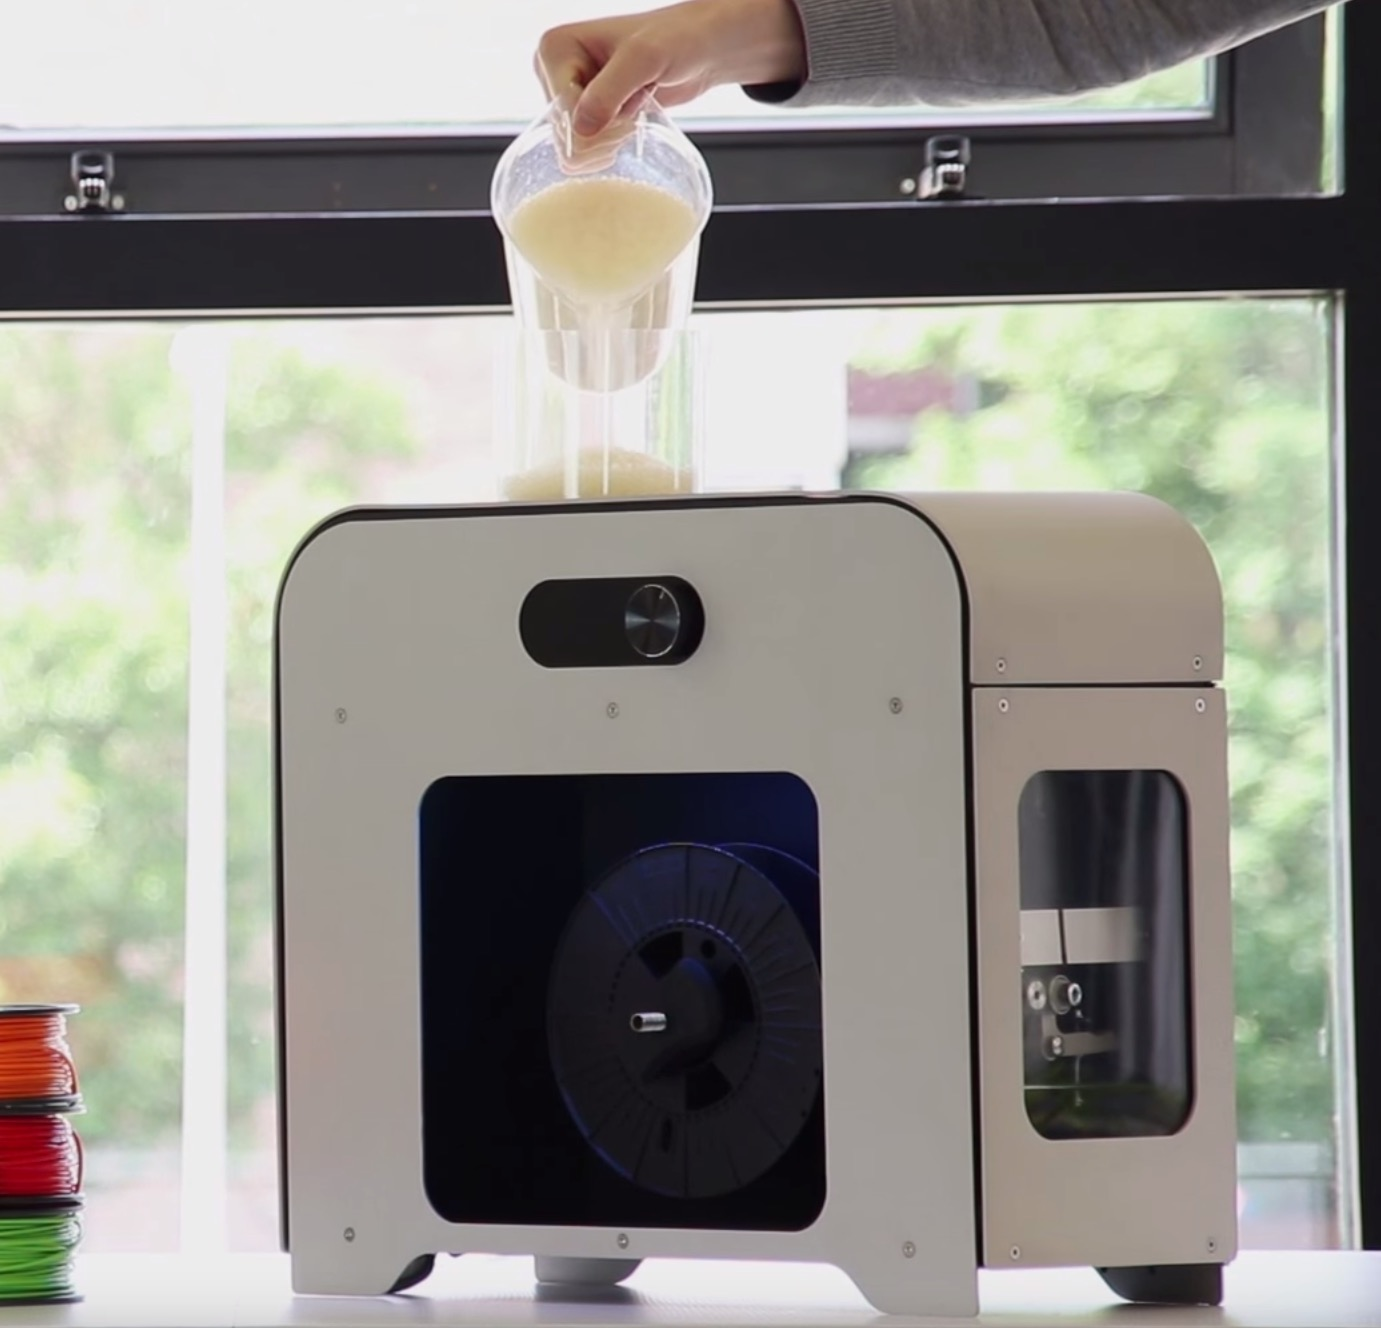 3devo Launches the NEXT 1.0 Filament Recycler